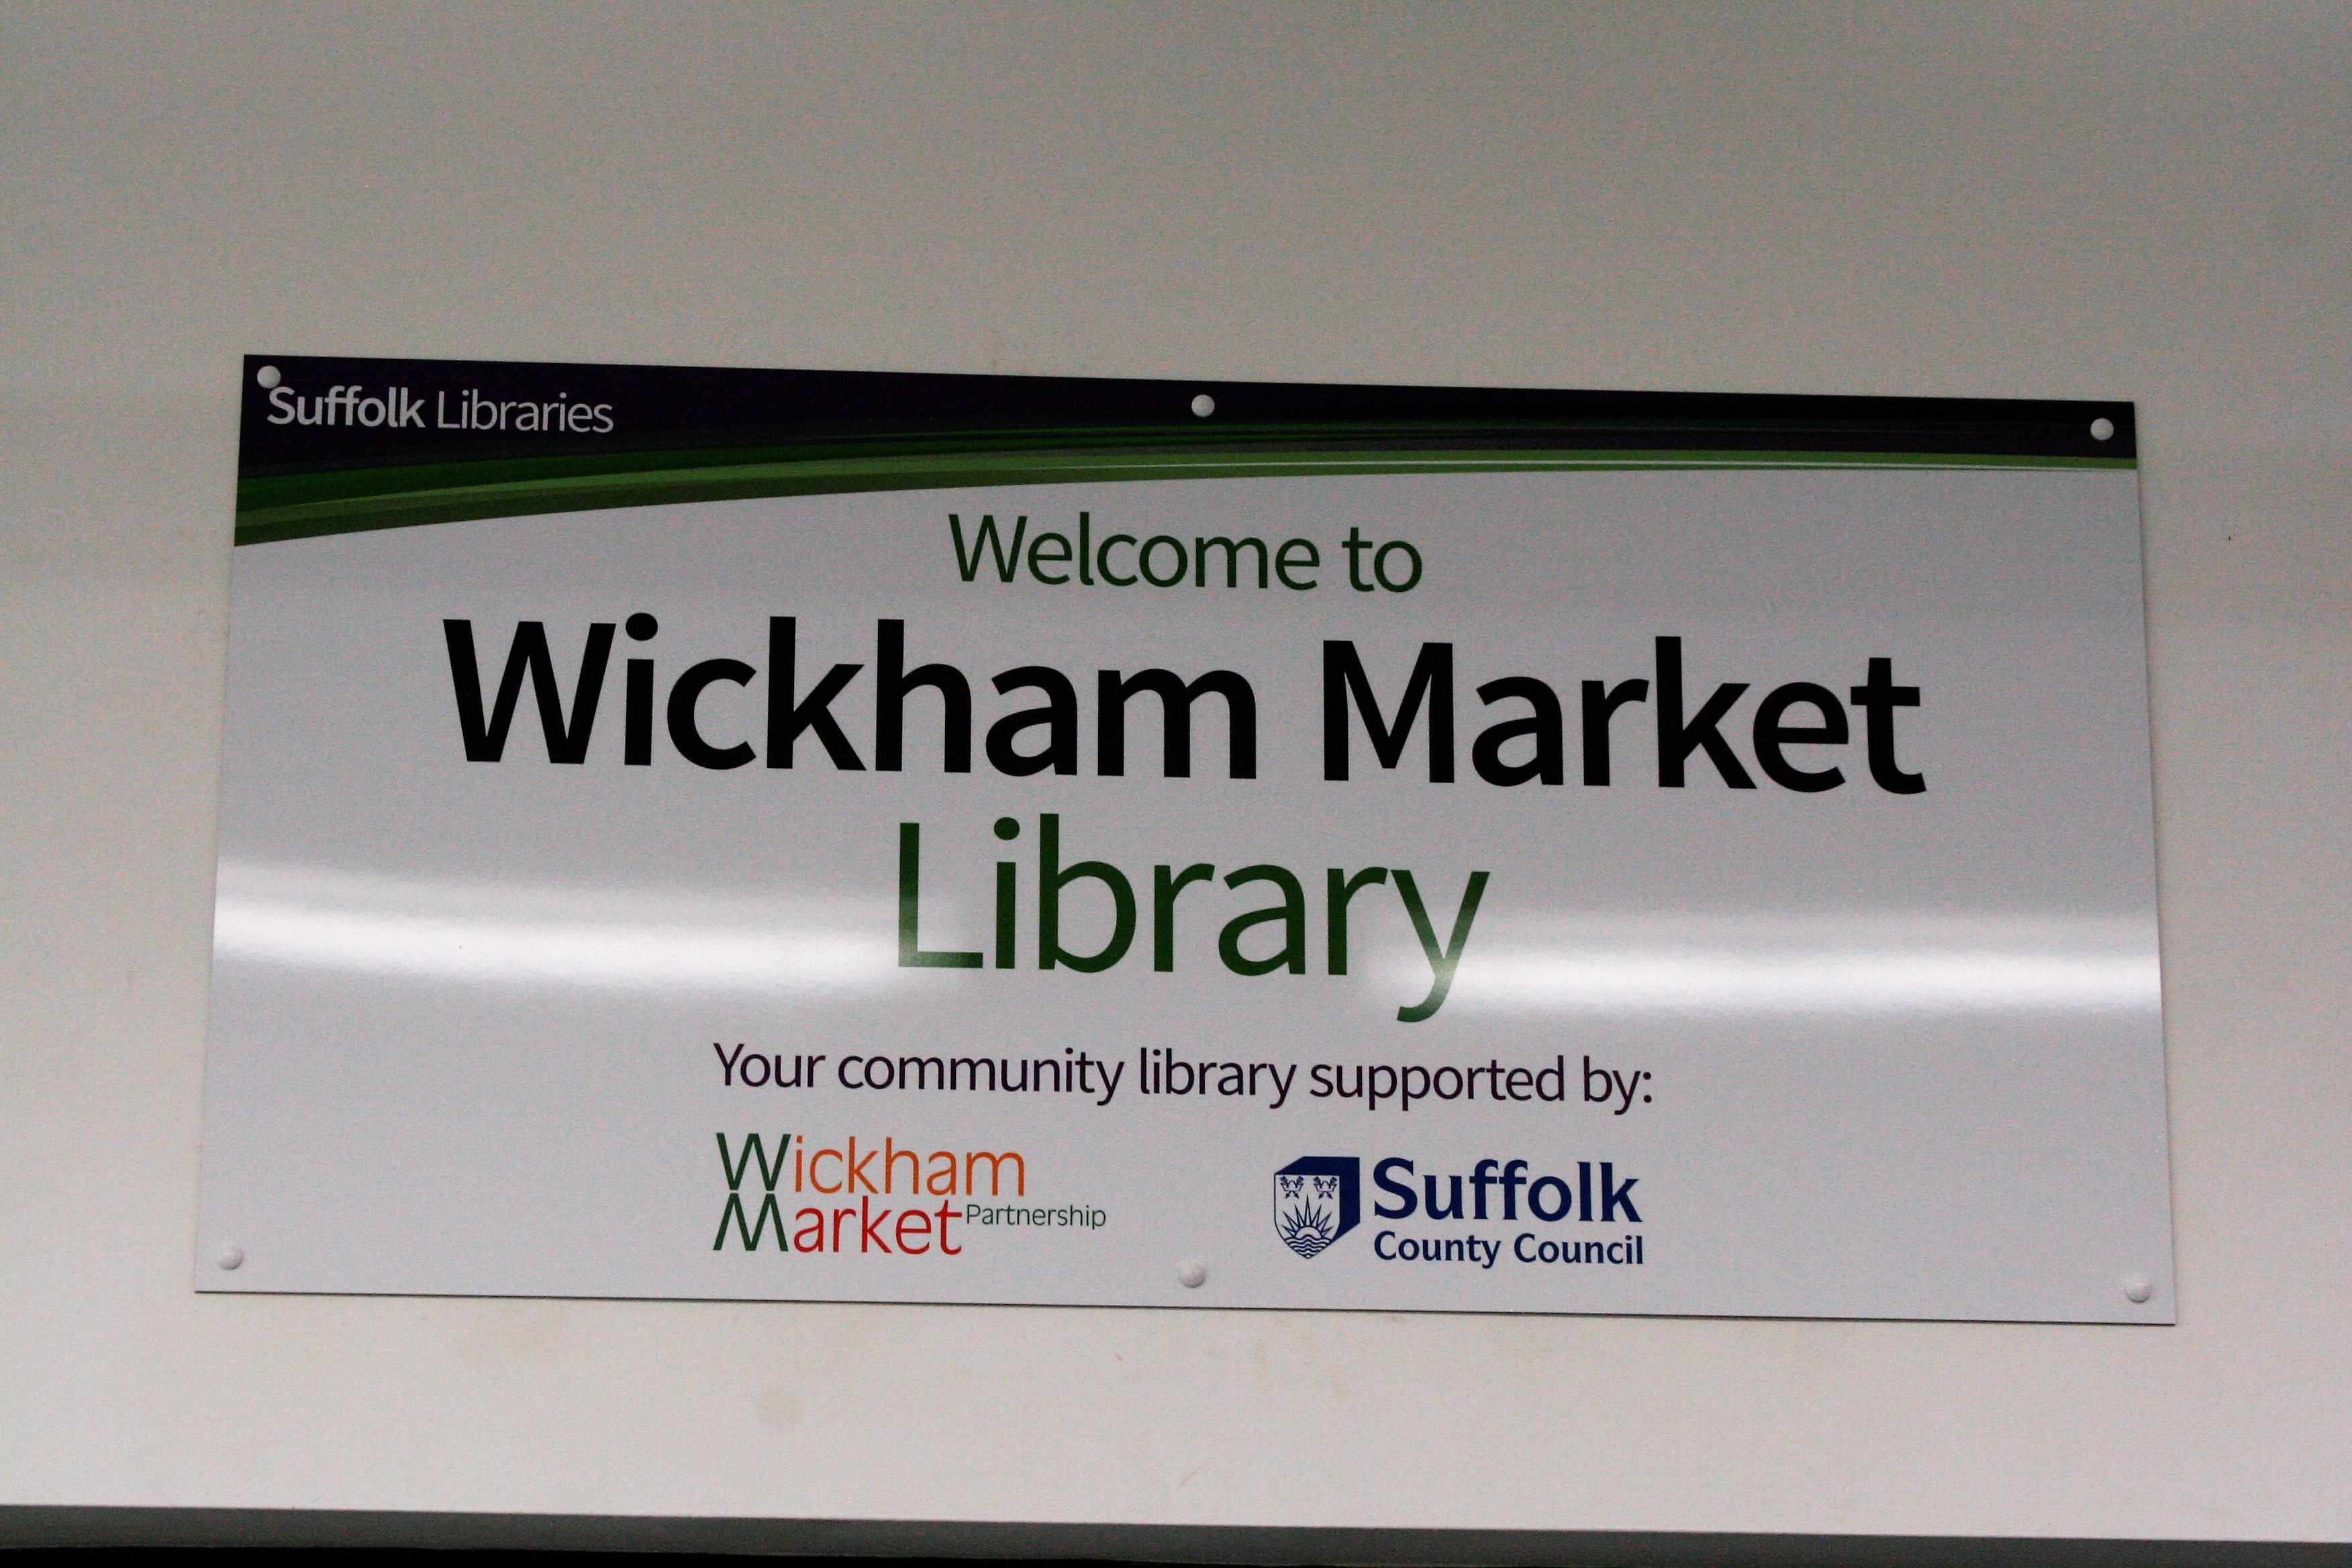 Wickham Market Library, Suffolk